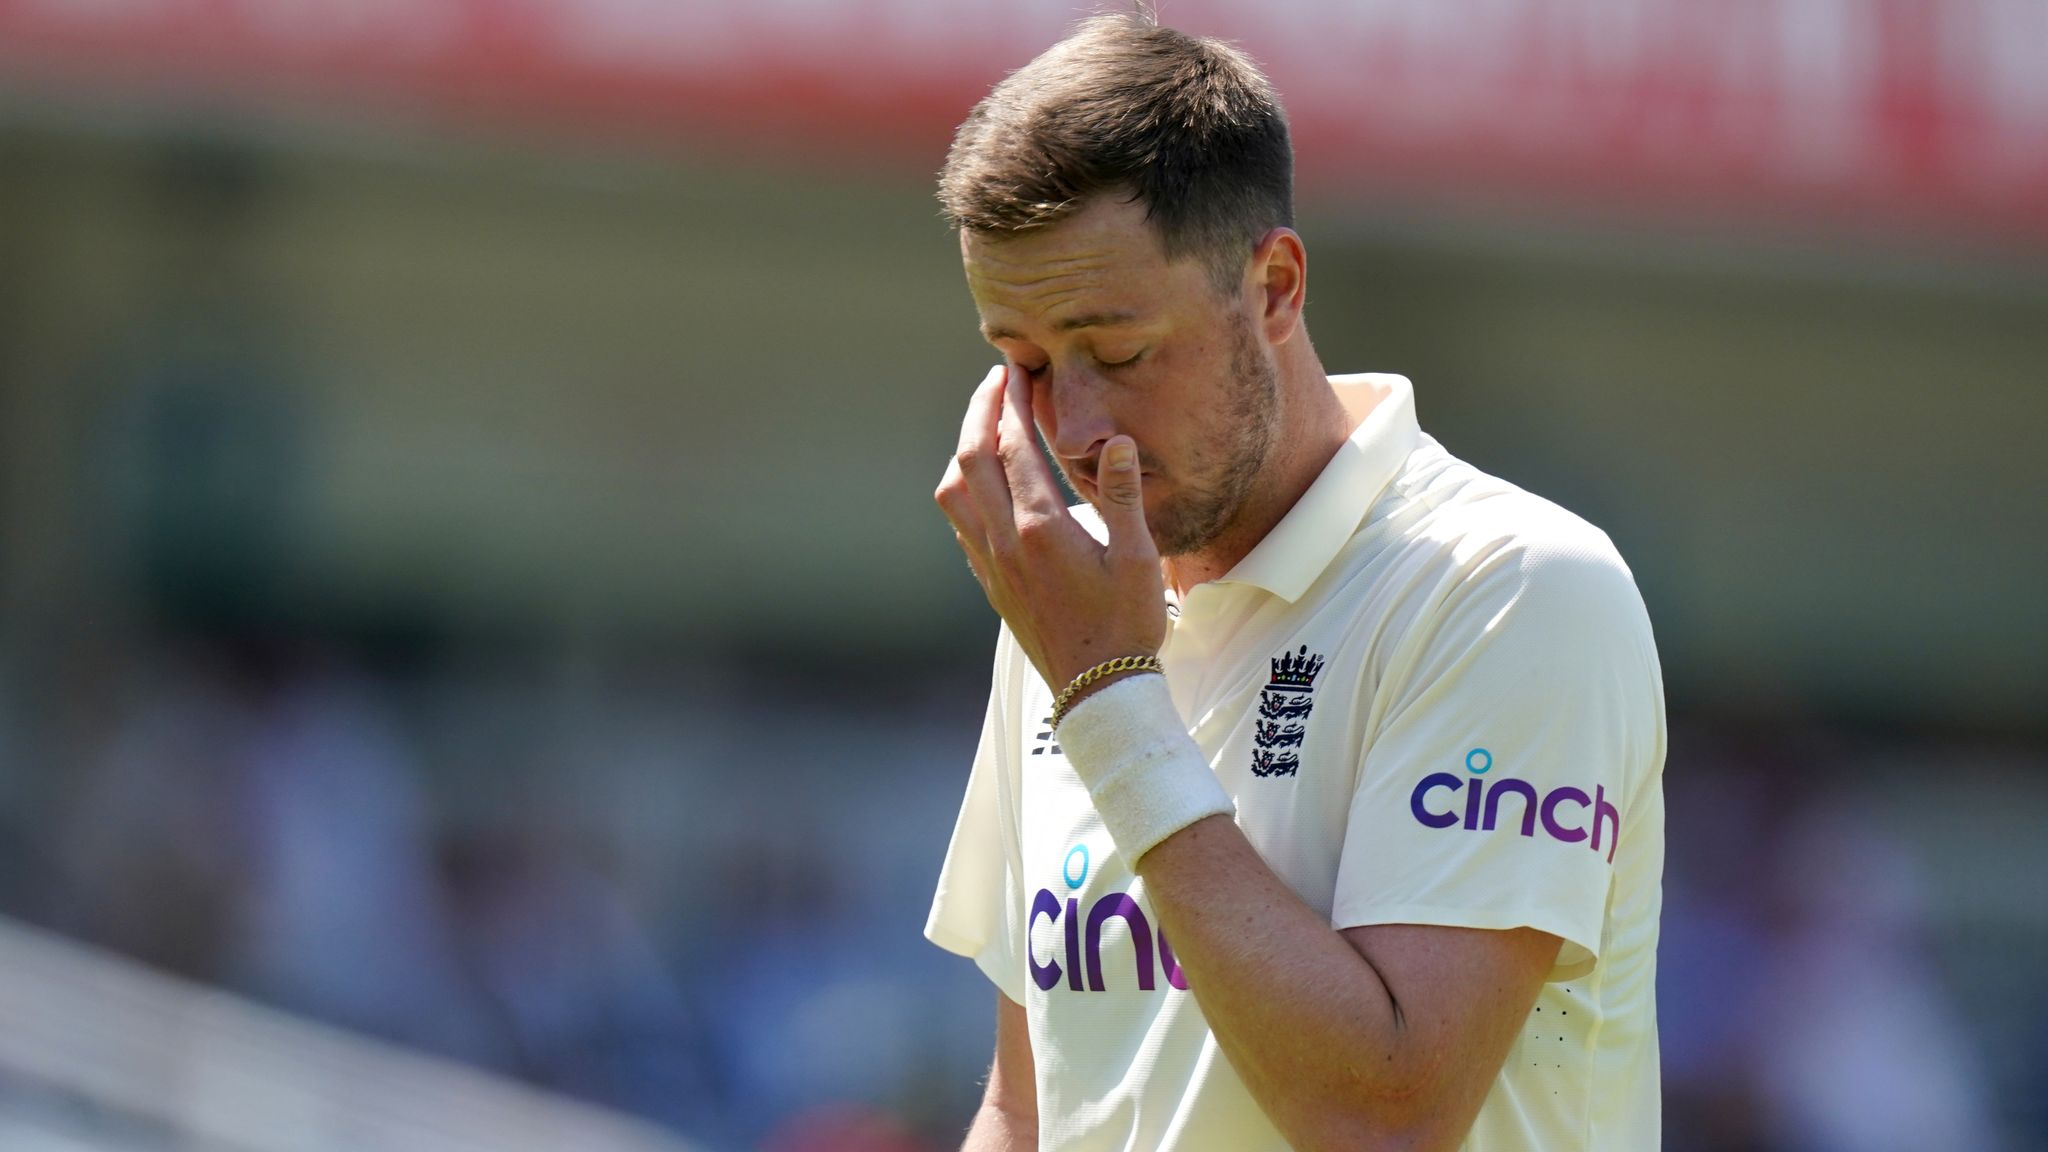 Ollie Robinson: Call for cricket board to rethink 'over the top' suspension  over old racist and sexist tweets | UK News | Sky News